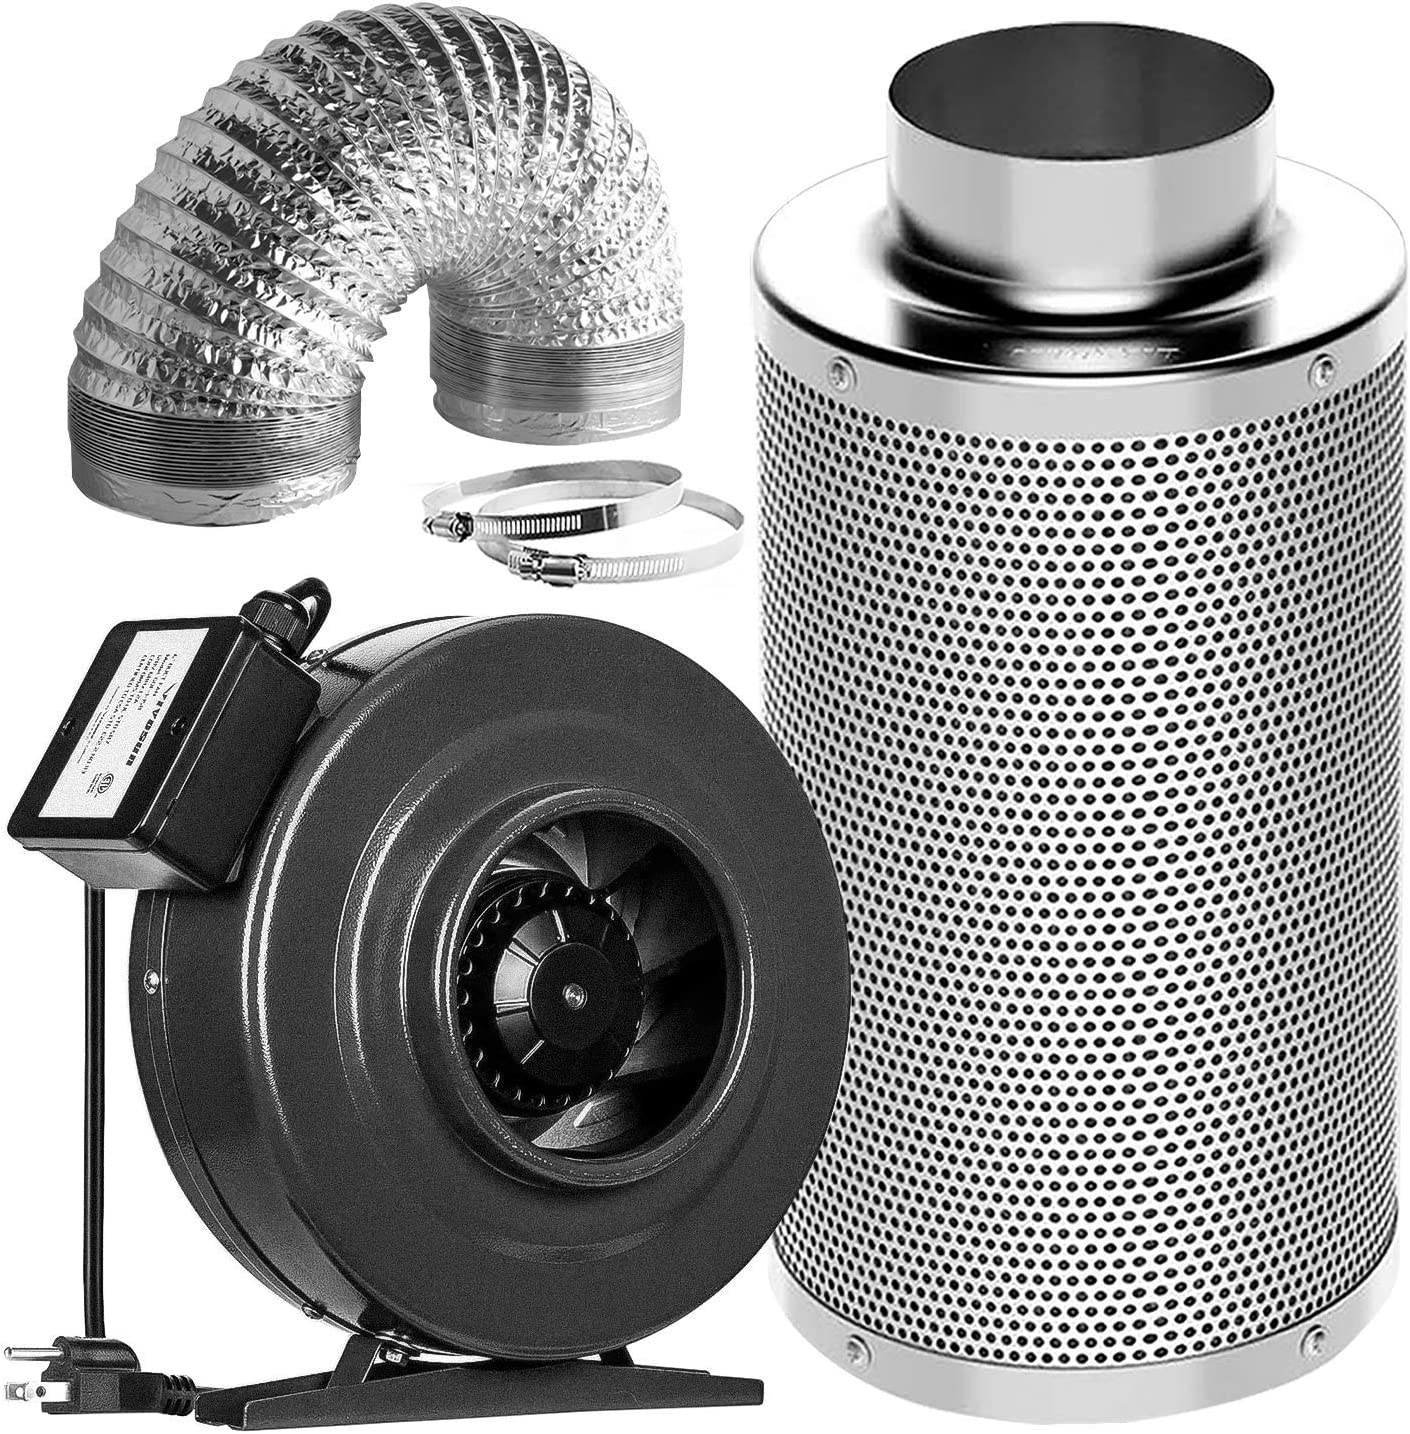 Plant Trellis Netting 5 x 15ft VIVOSUN Air Filtration Kit: 6 Inch 440 CFM Inline Fan 1 Pack 6 Carbon Filter and 16 Feet of Ducting Combo